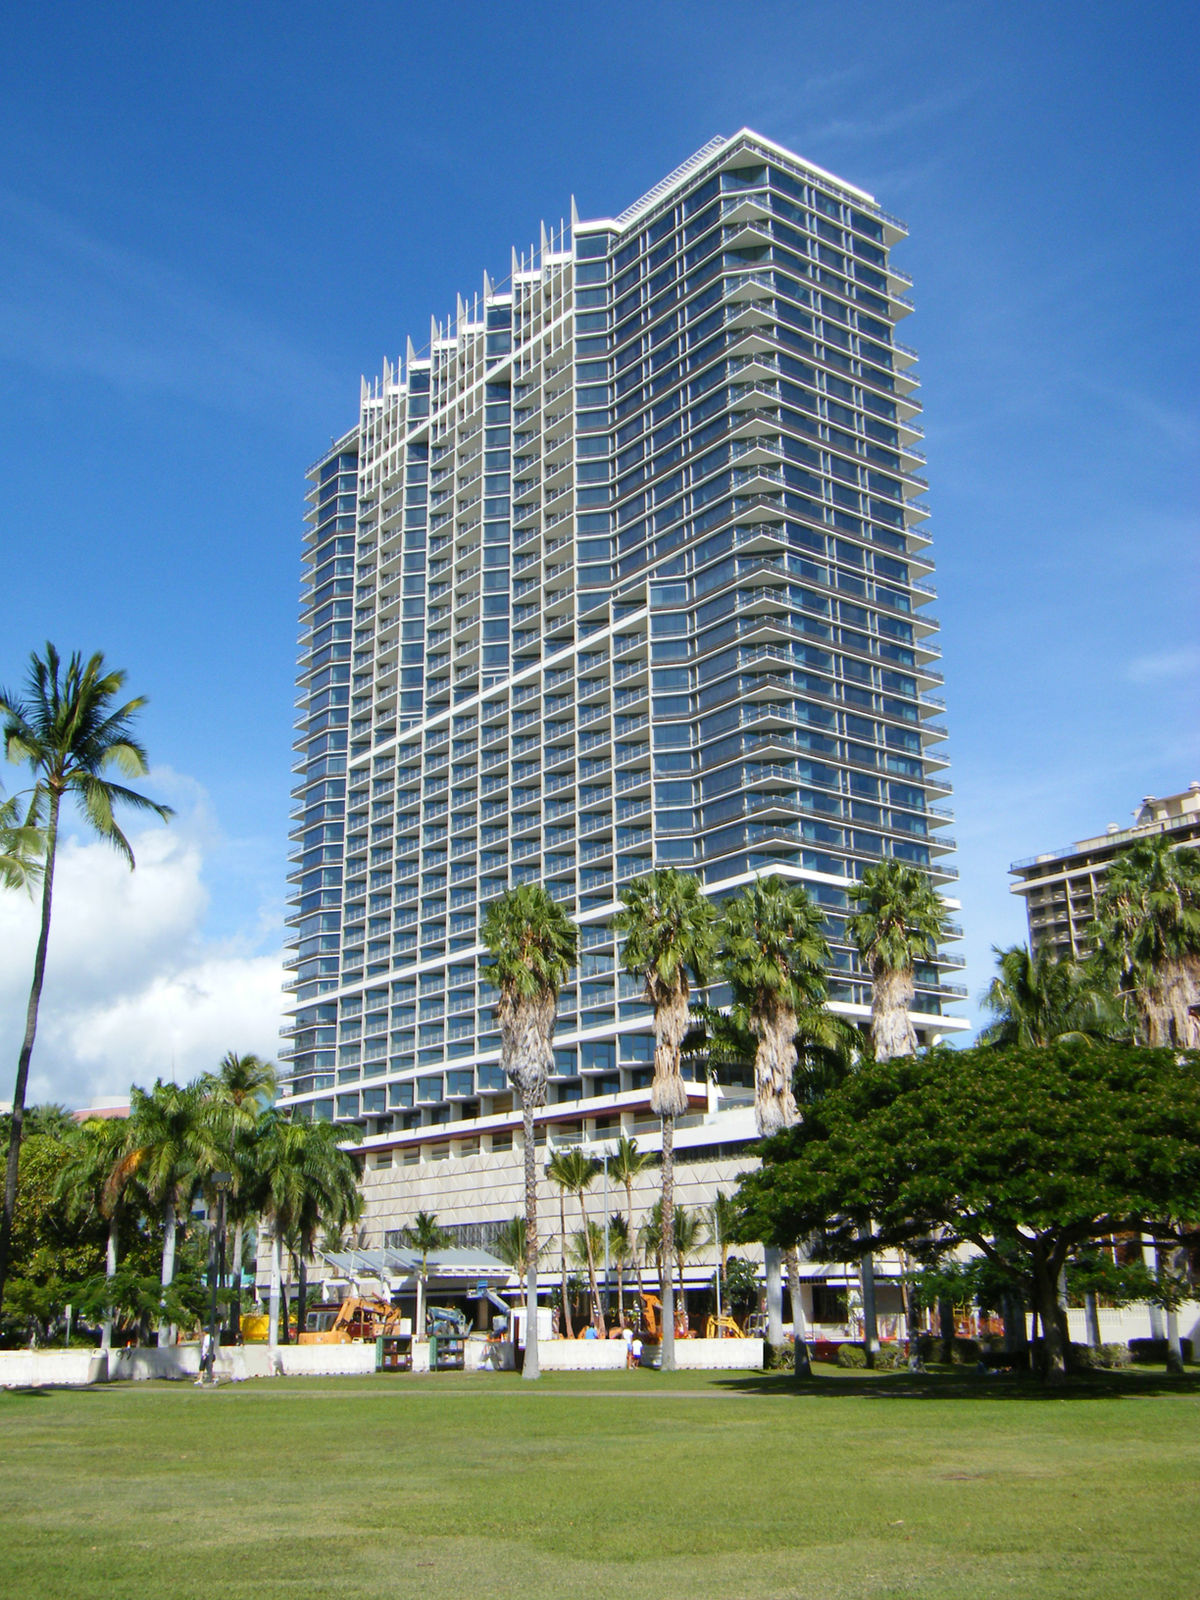 Honolulu Casino